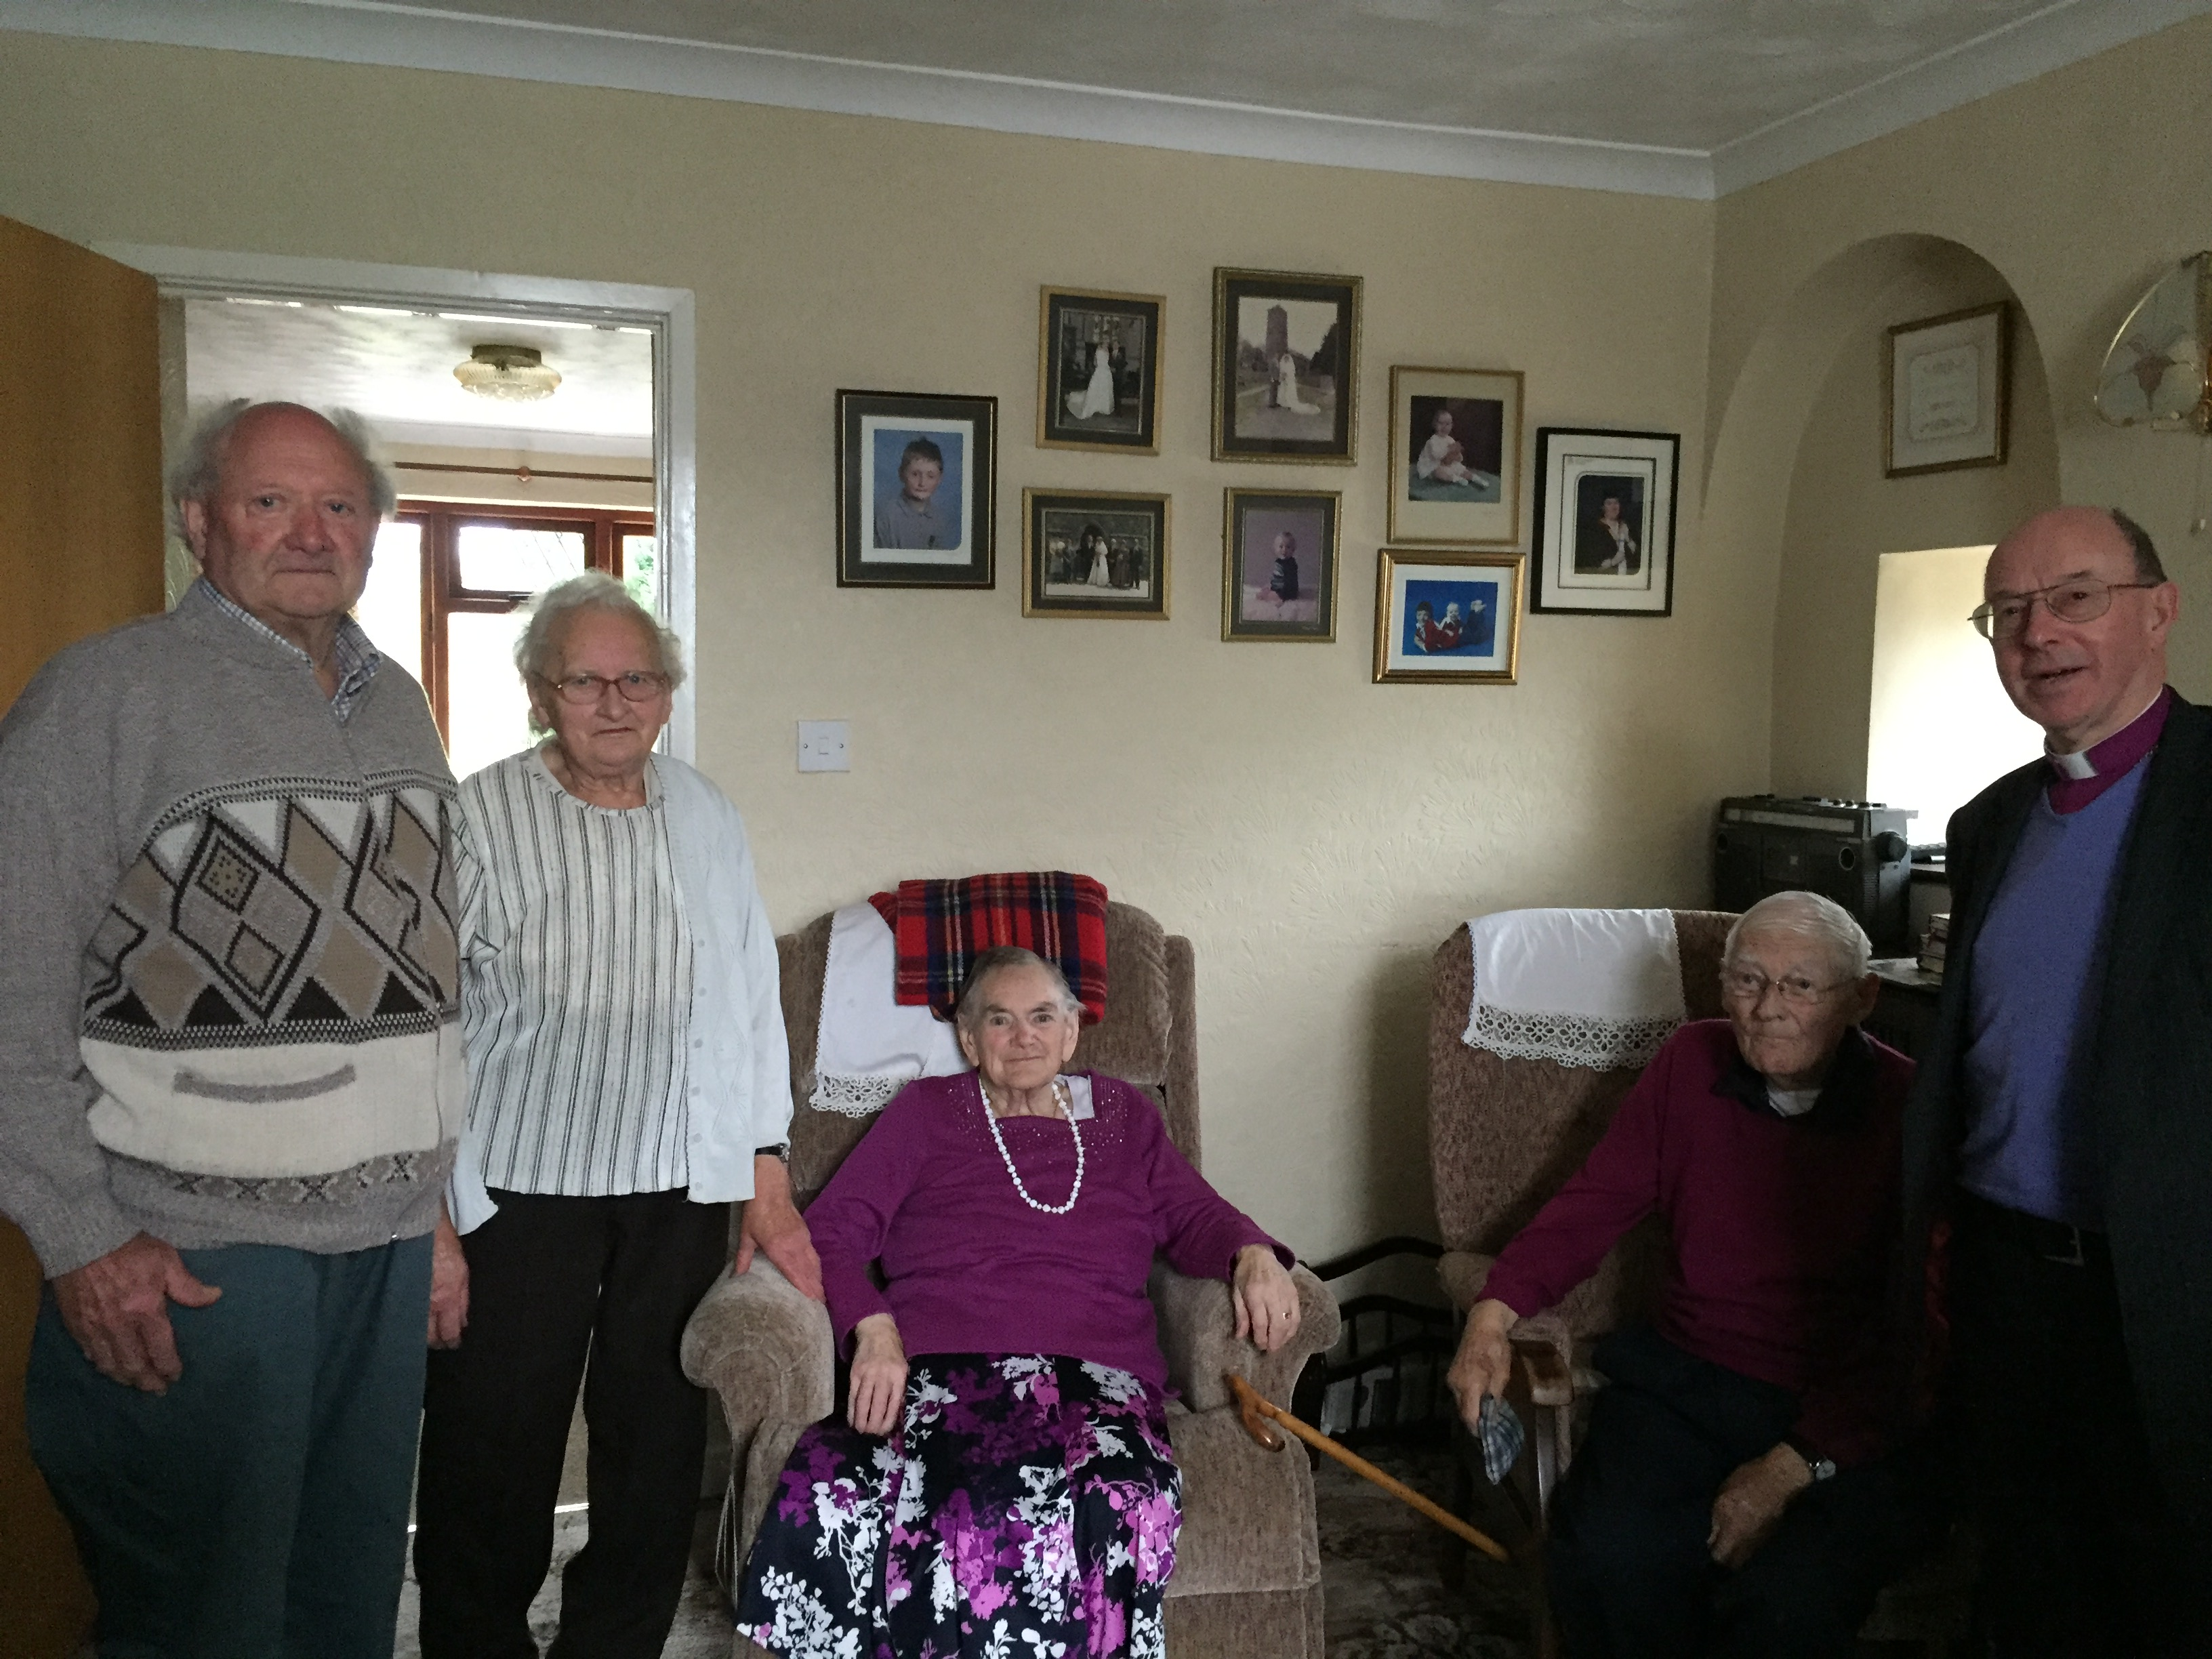 Eileen and Eirys Thomas' parents are the oldest members of the coingregation